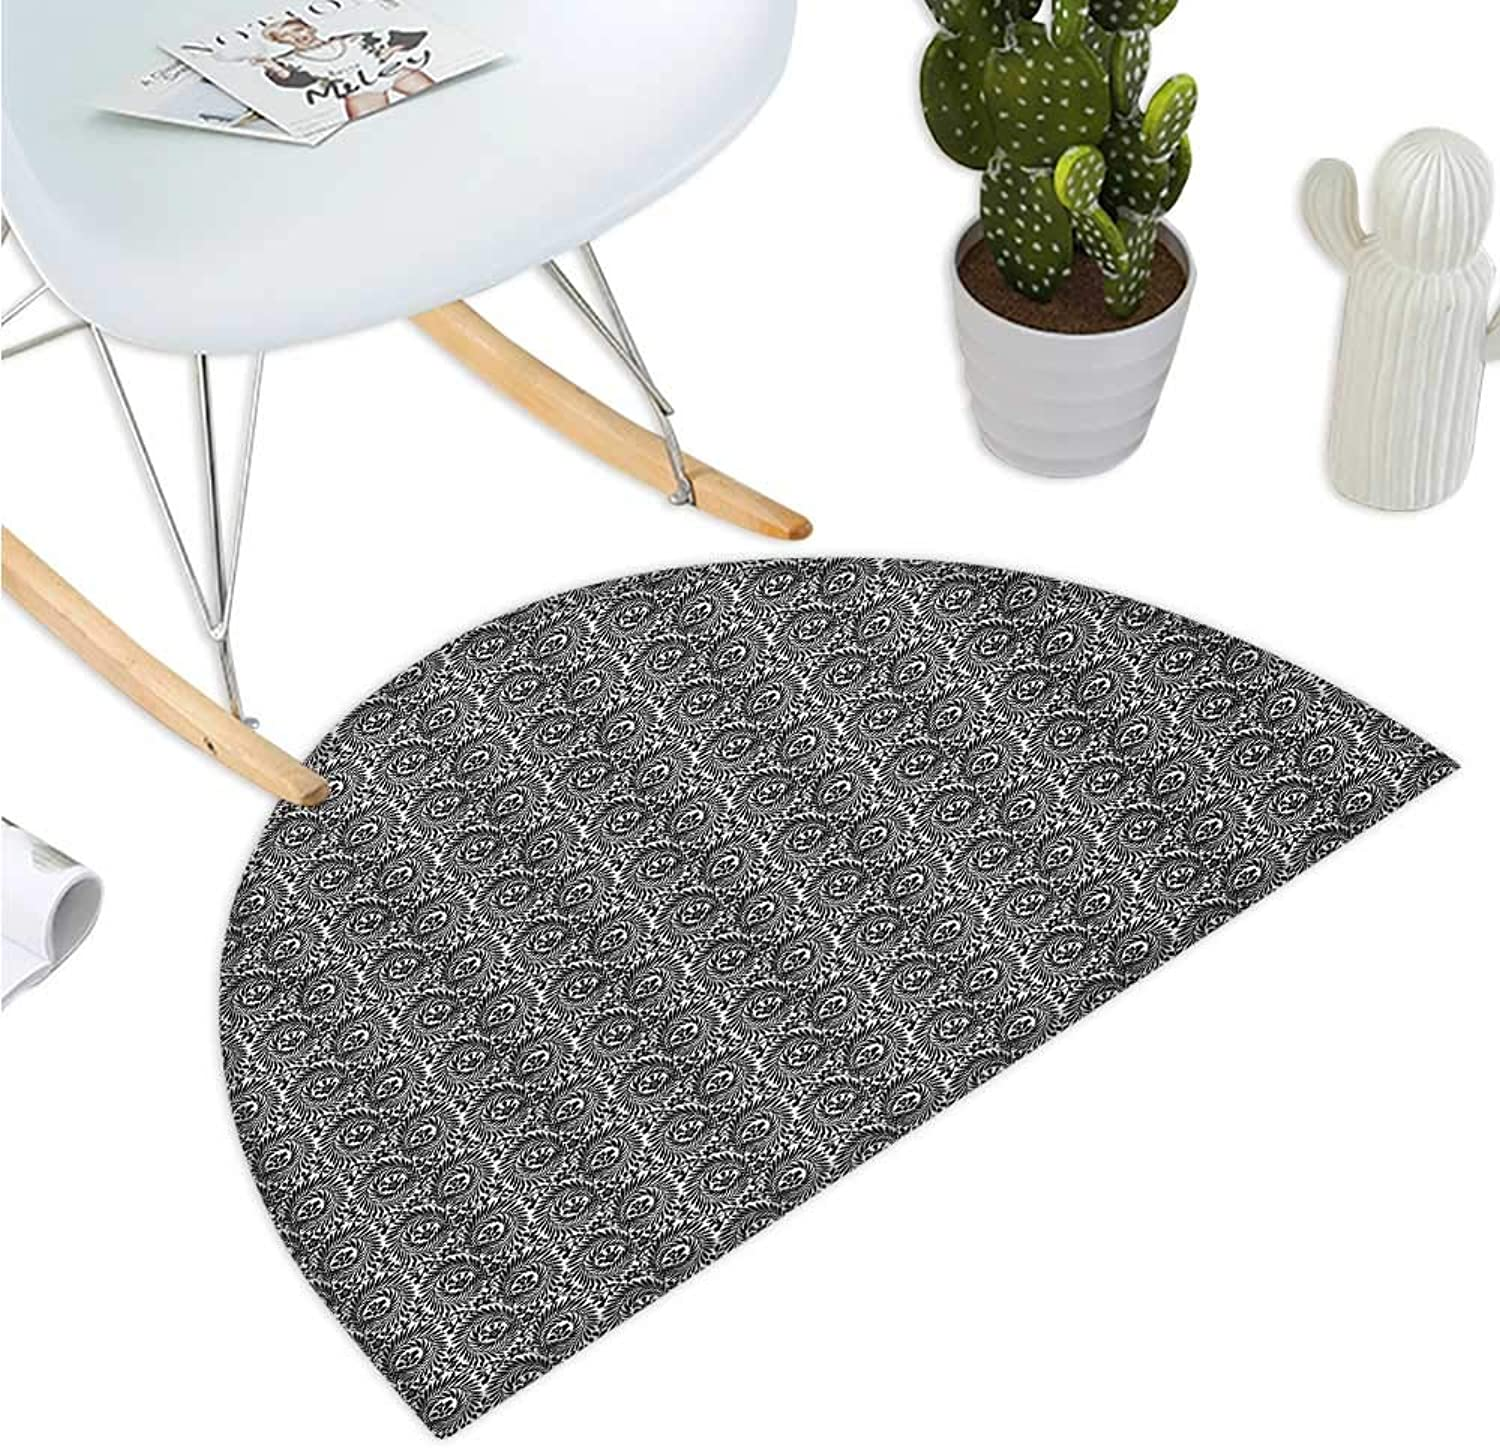 Black and White Semicircular Cushion Little Spring Blossoms and Swirled Leaves Botanical Retro Pattern Halfmoon doormats H 39.3  xD 59  Black and White